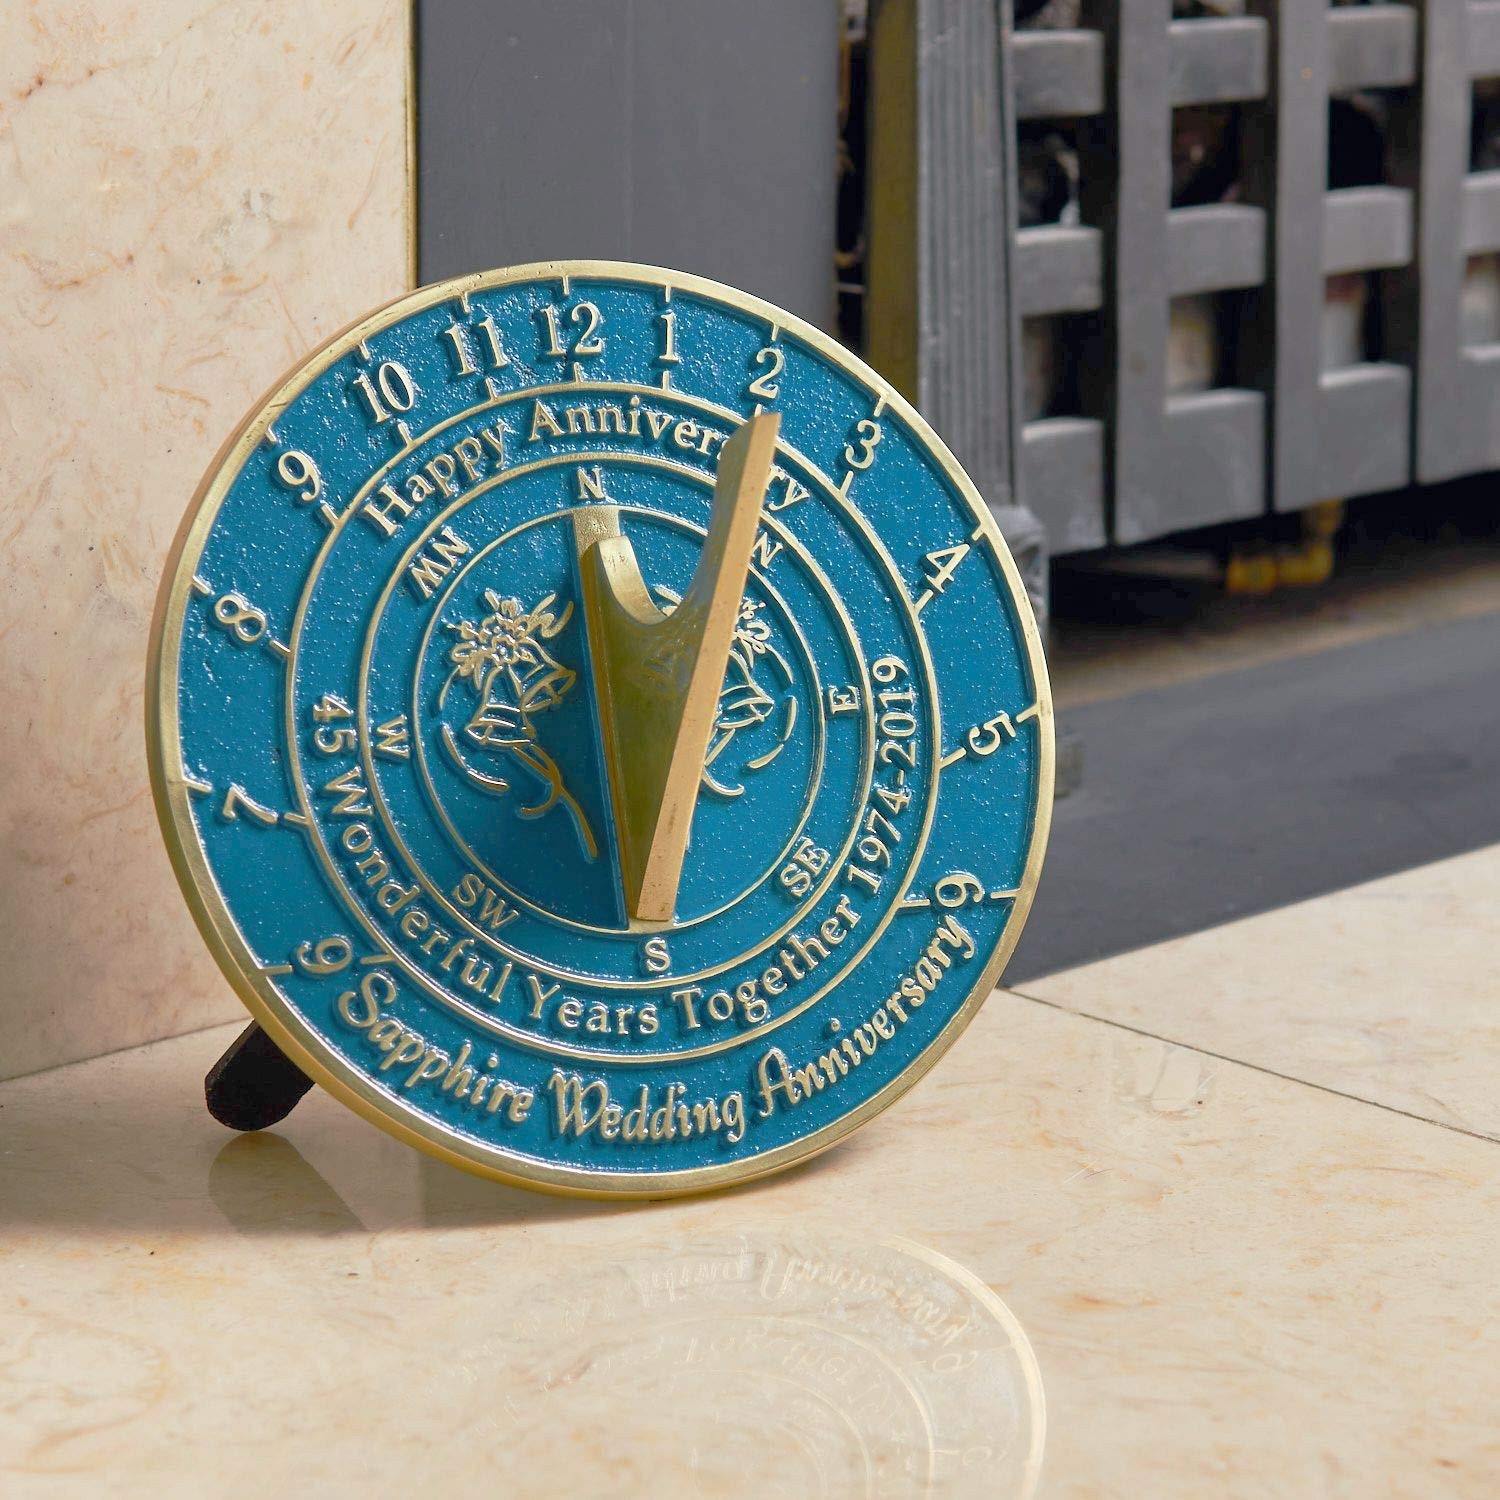 The Metal Foundry 45th Sapphire Wedding Anniversary 2019 Sundial Gift Idea is A Great Present for Him, for Her Or for A Couple to Celebrate 45 Years of Marriage